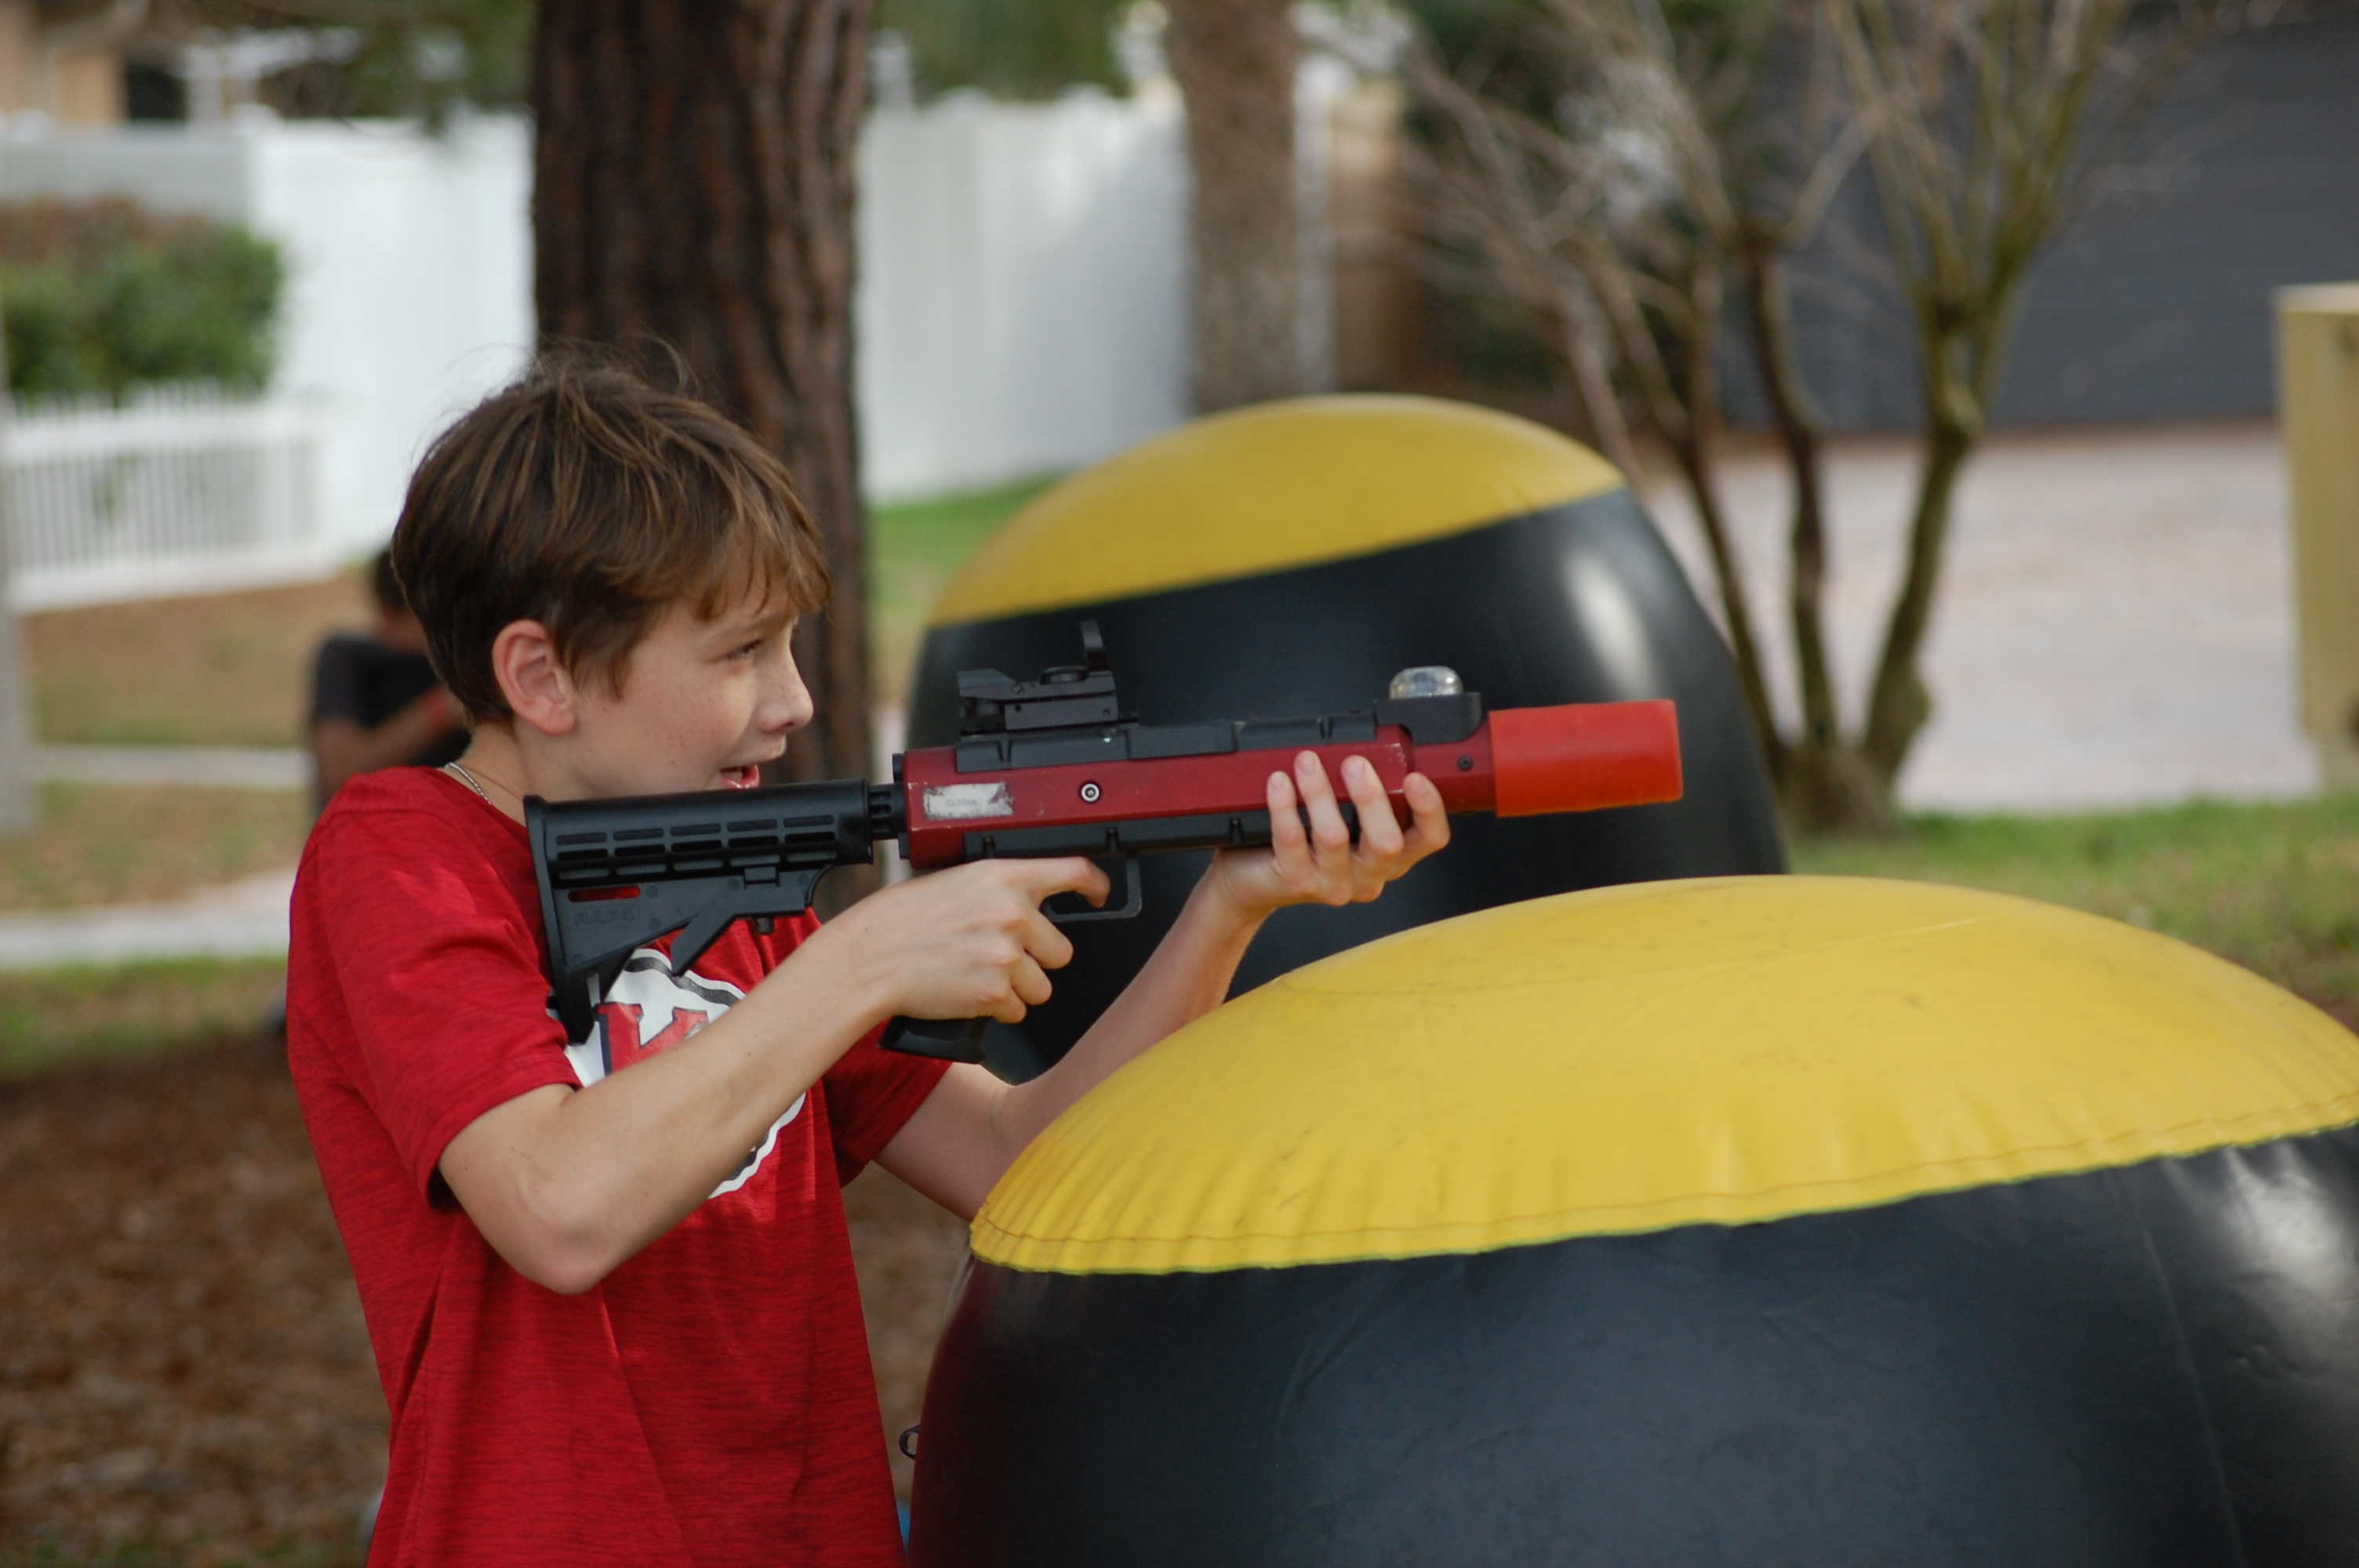 Laser tag in Brandon, FL